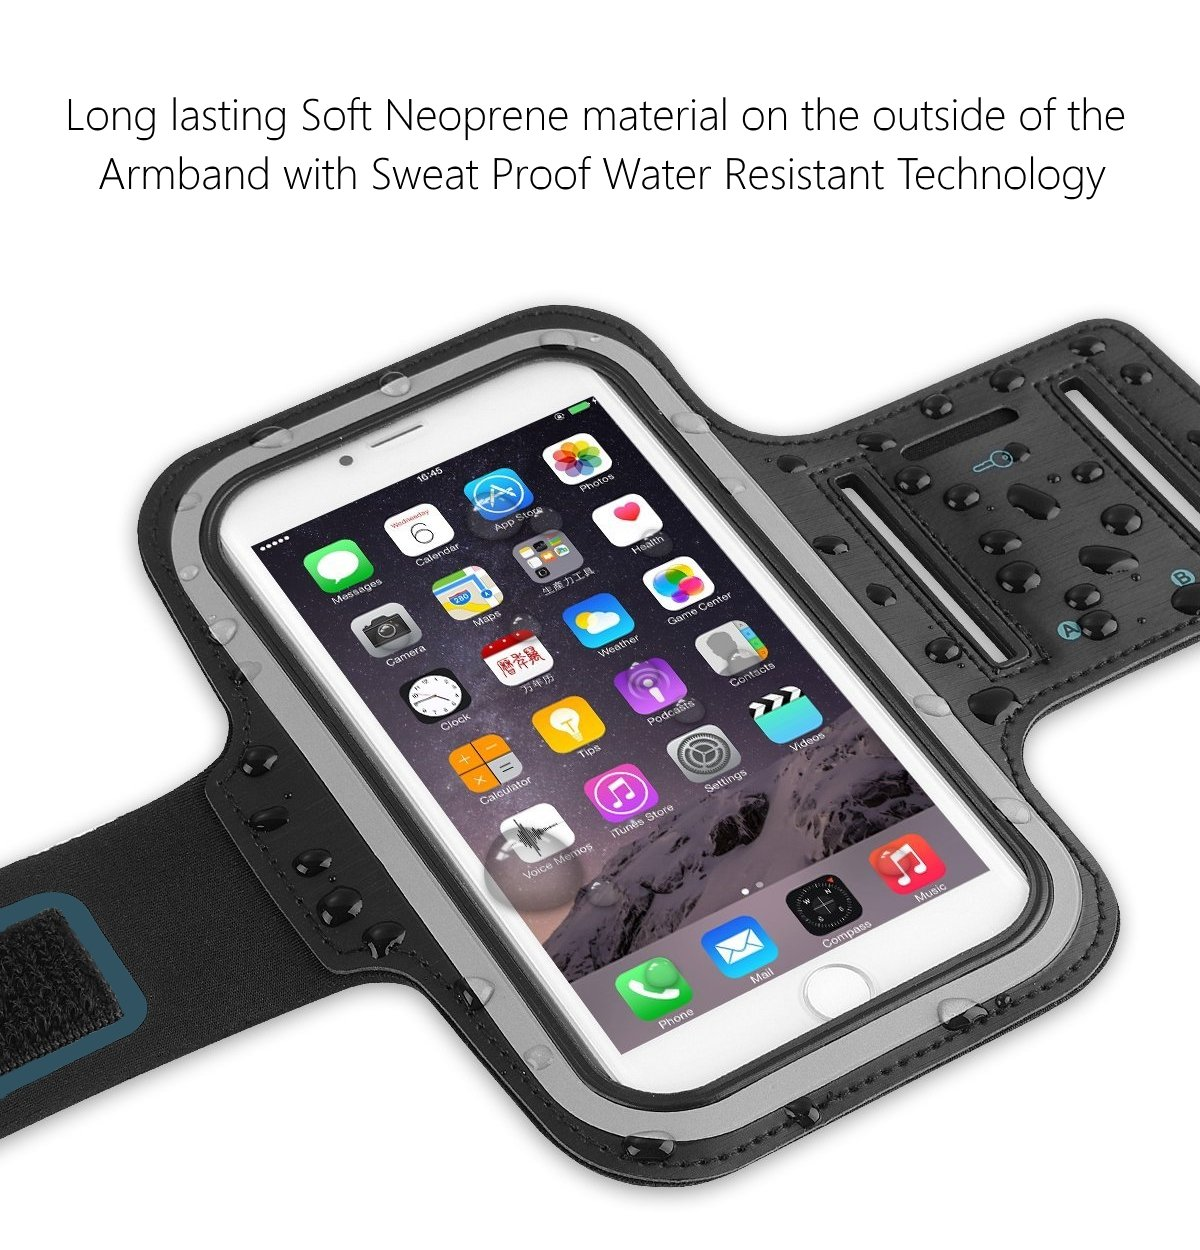 Sweatproof Sports Arm Band Strap Protective Holder Pouch Case For Gym Running For iPhone 6 6S 7 7S 8 Plus Touch Samsung Galaxy S8 S7 S6 S5 Pixel Note 4 5 Edge HTC ONE Android Phone Holder For Running